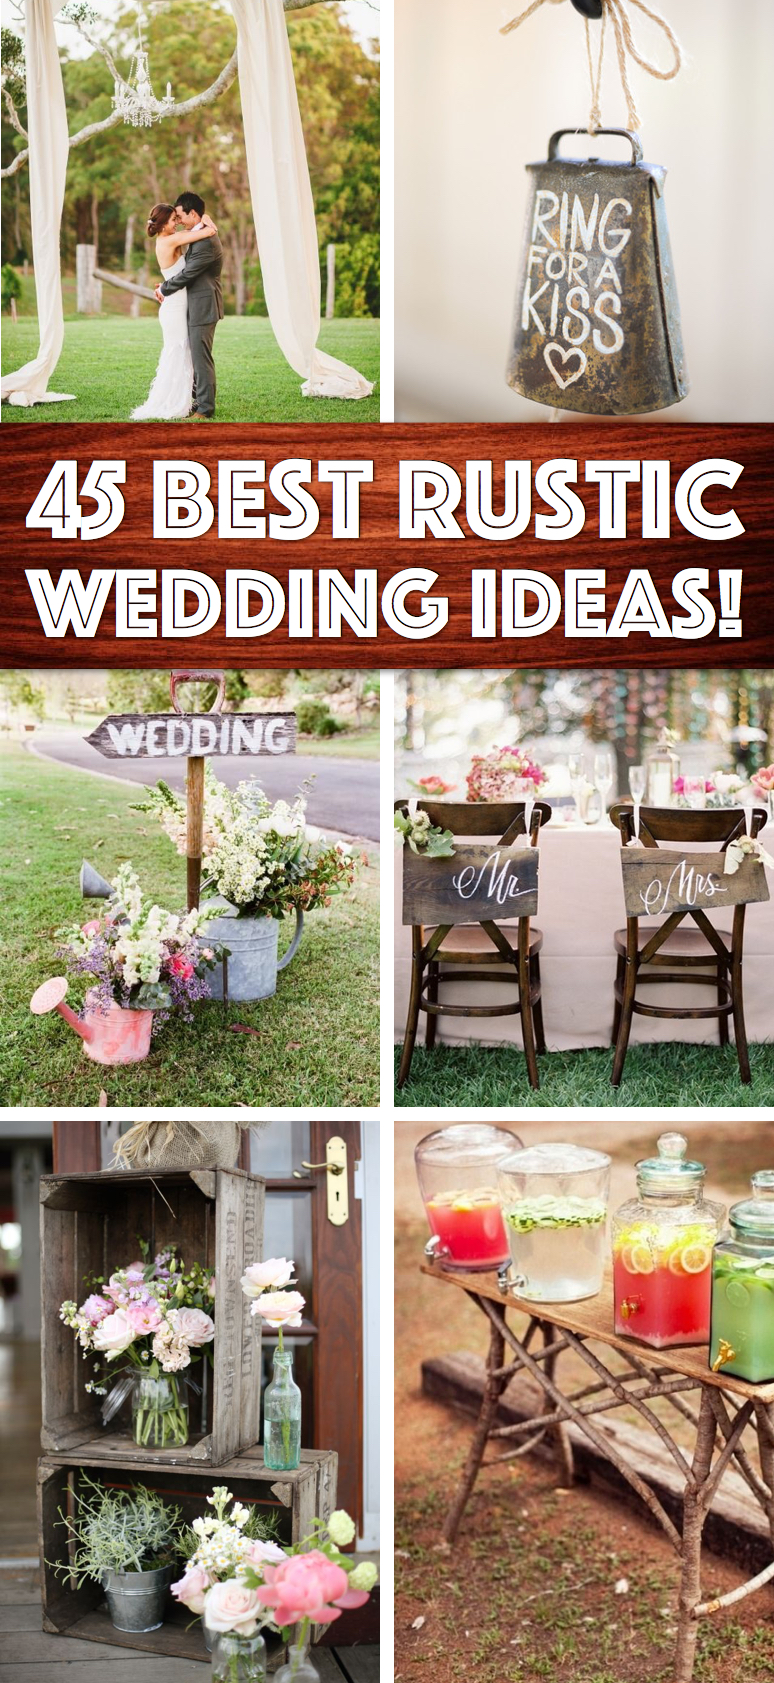 cheap rustic wedding decorations rustic wedding centerpieces rustic burlap wedding decorations